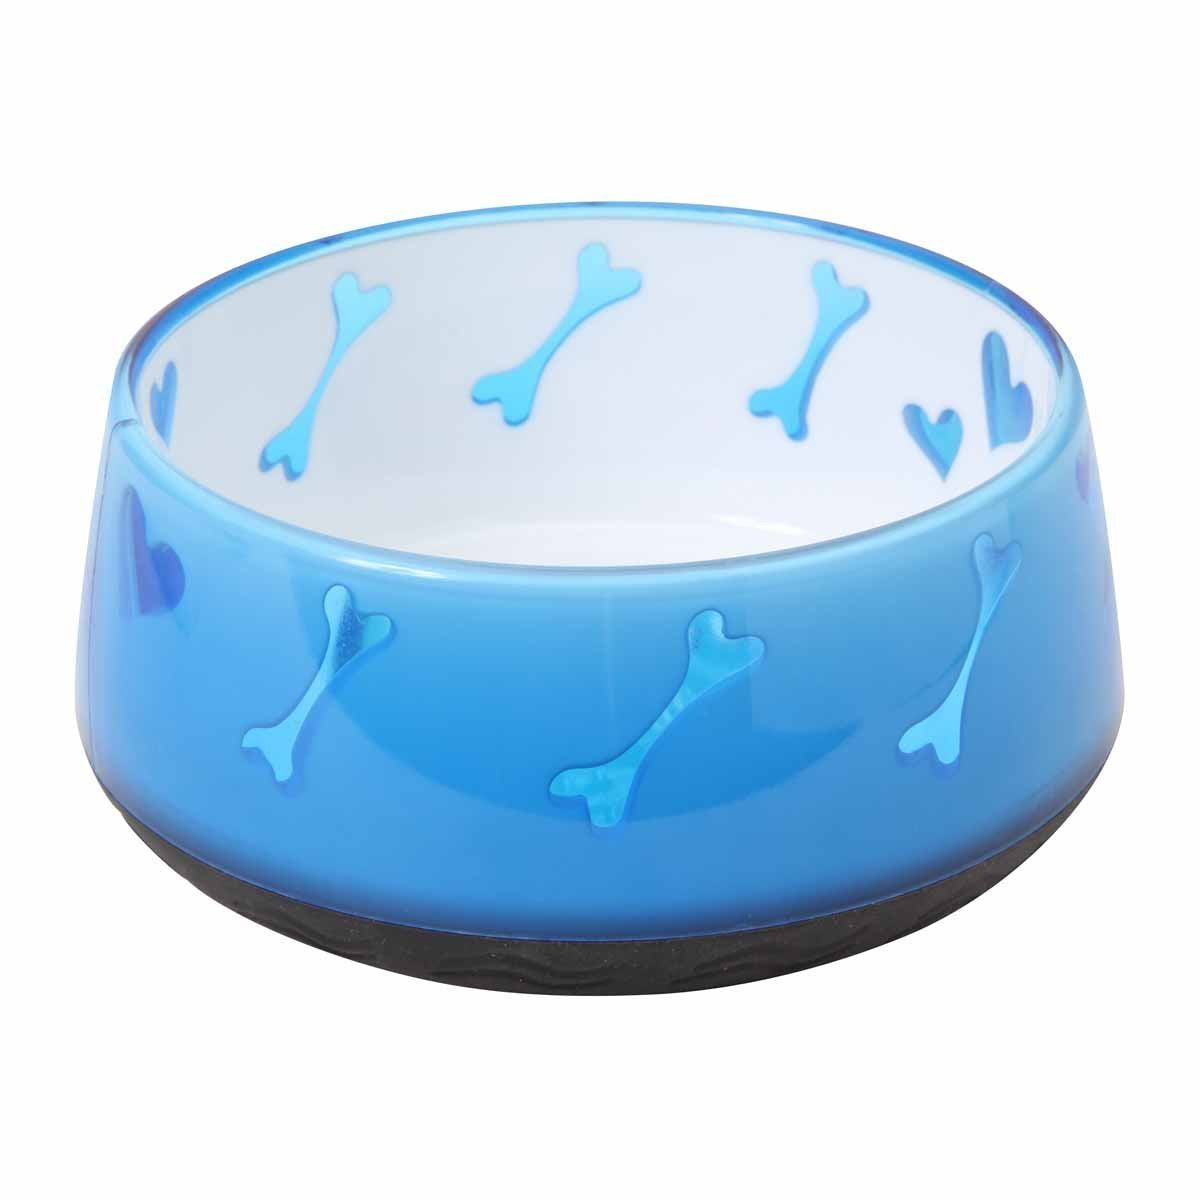 AFP Dog Love Bowl - Blue - M